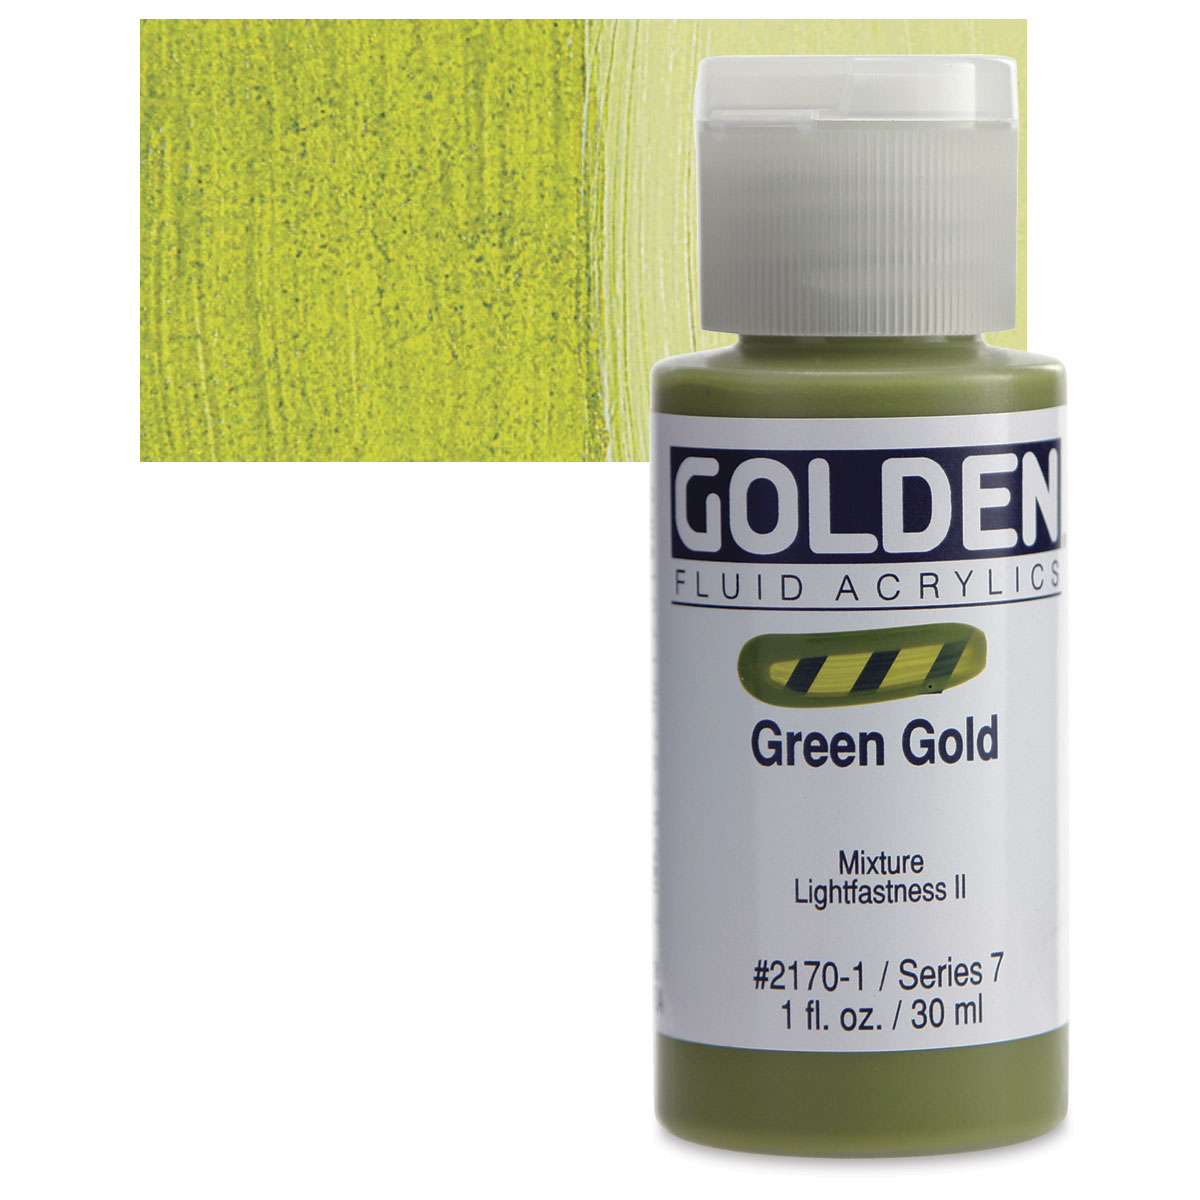 006387001 golden fluid acrylics blick art materials